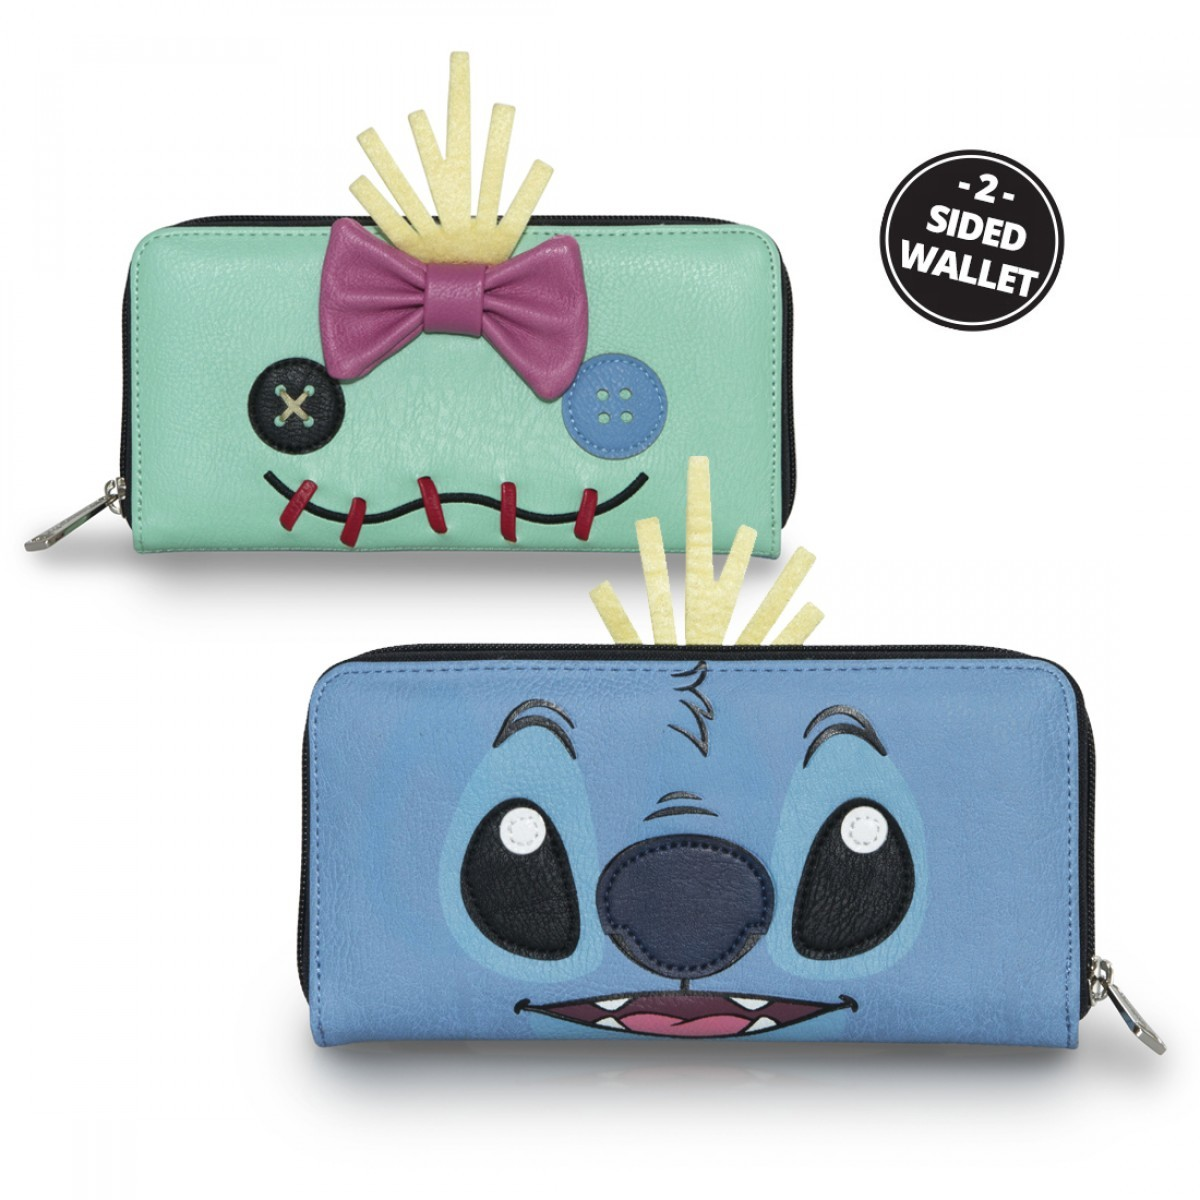 7fea6c761e4 Loungefly Disney Stitch and Scrump Wallet image ...